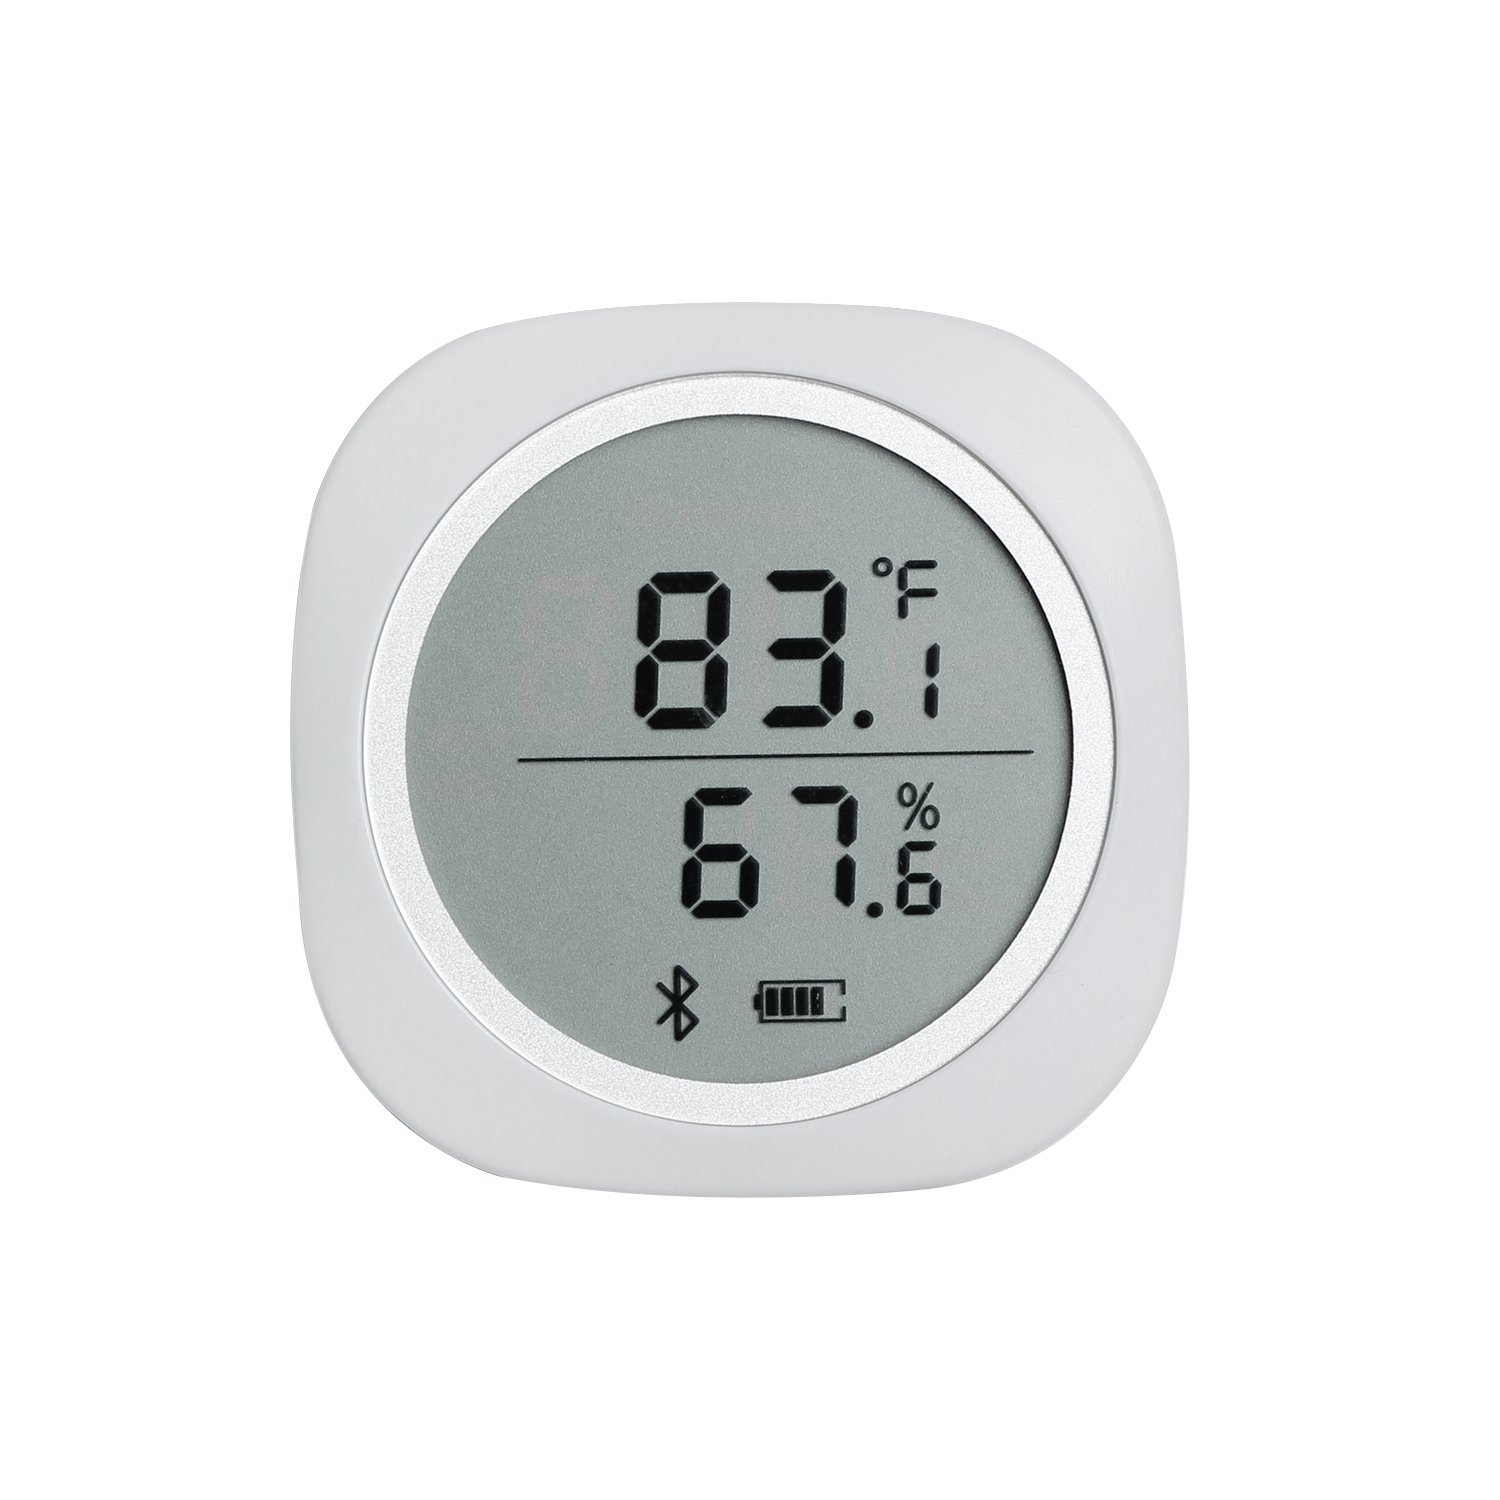 Inkbird Smart Sensor Data Logger Temperature Humidity Recorder Bluetooth Wireless for Android iPhone (IBS-TH1 plus)